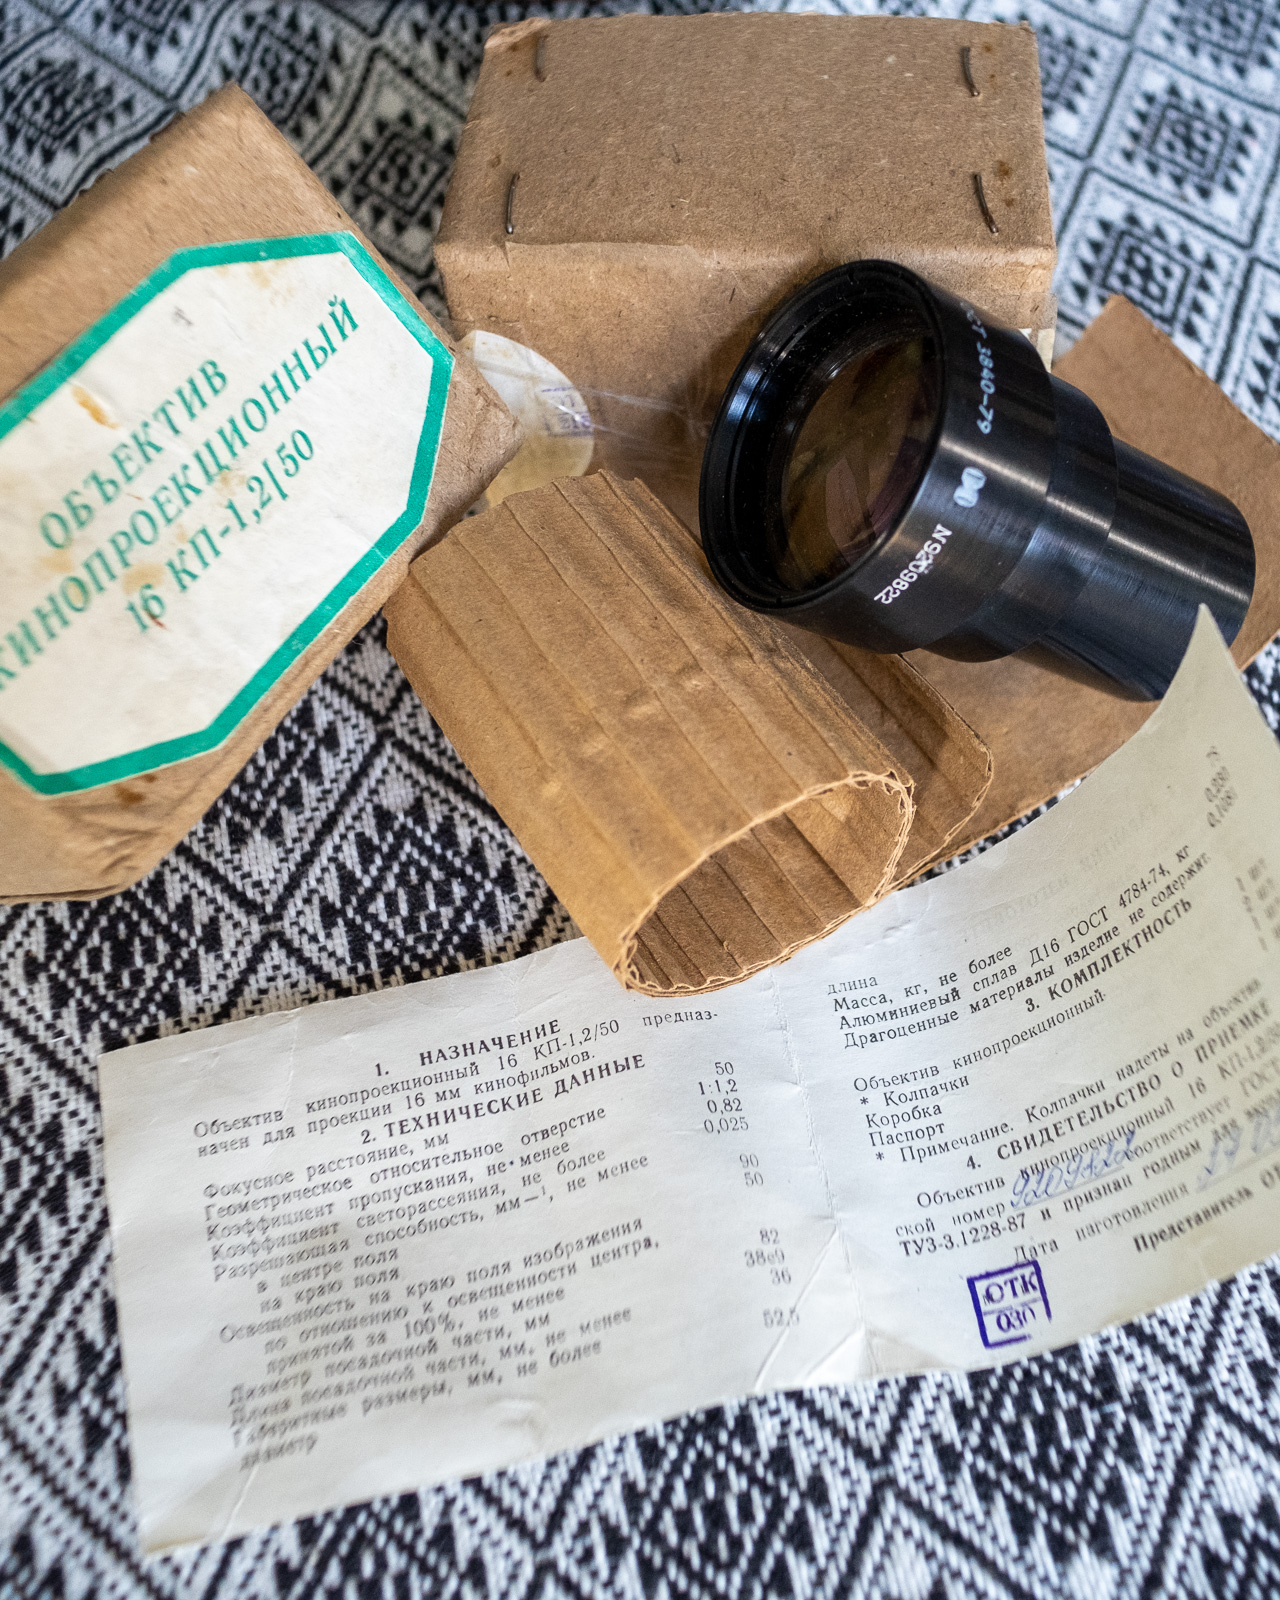 Projector lens, box, and instructions.